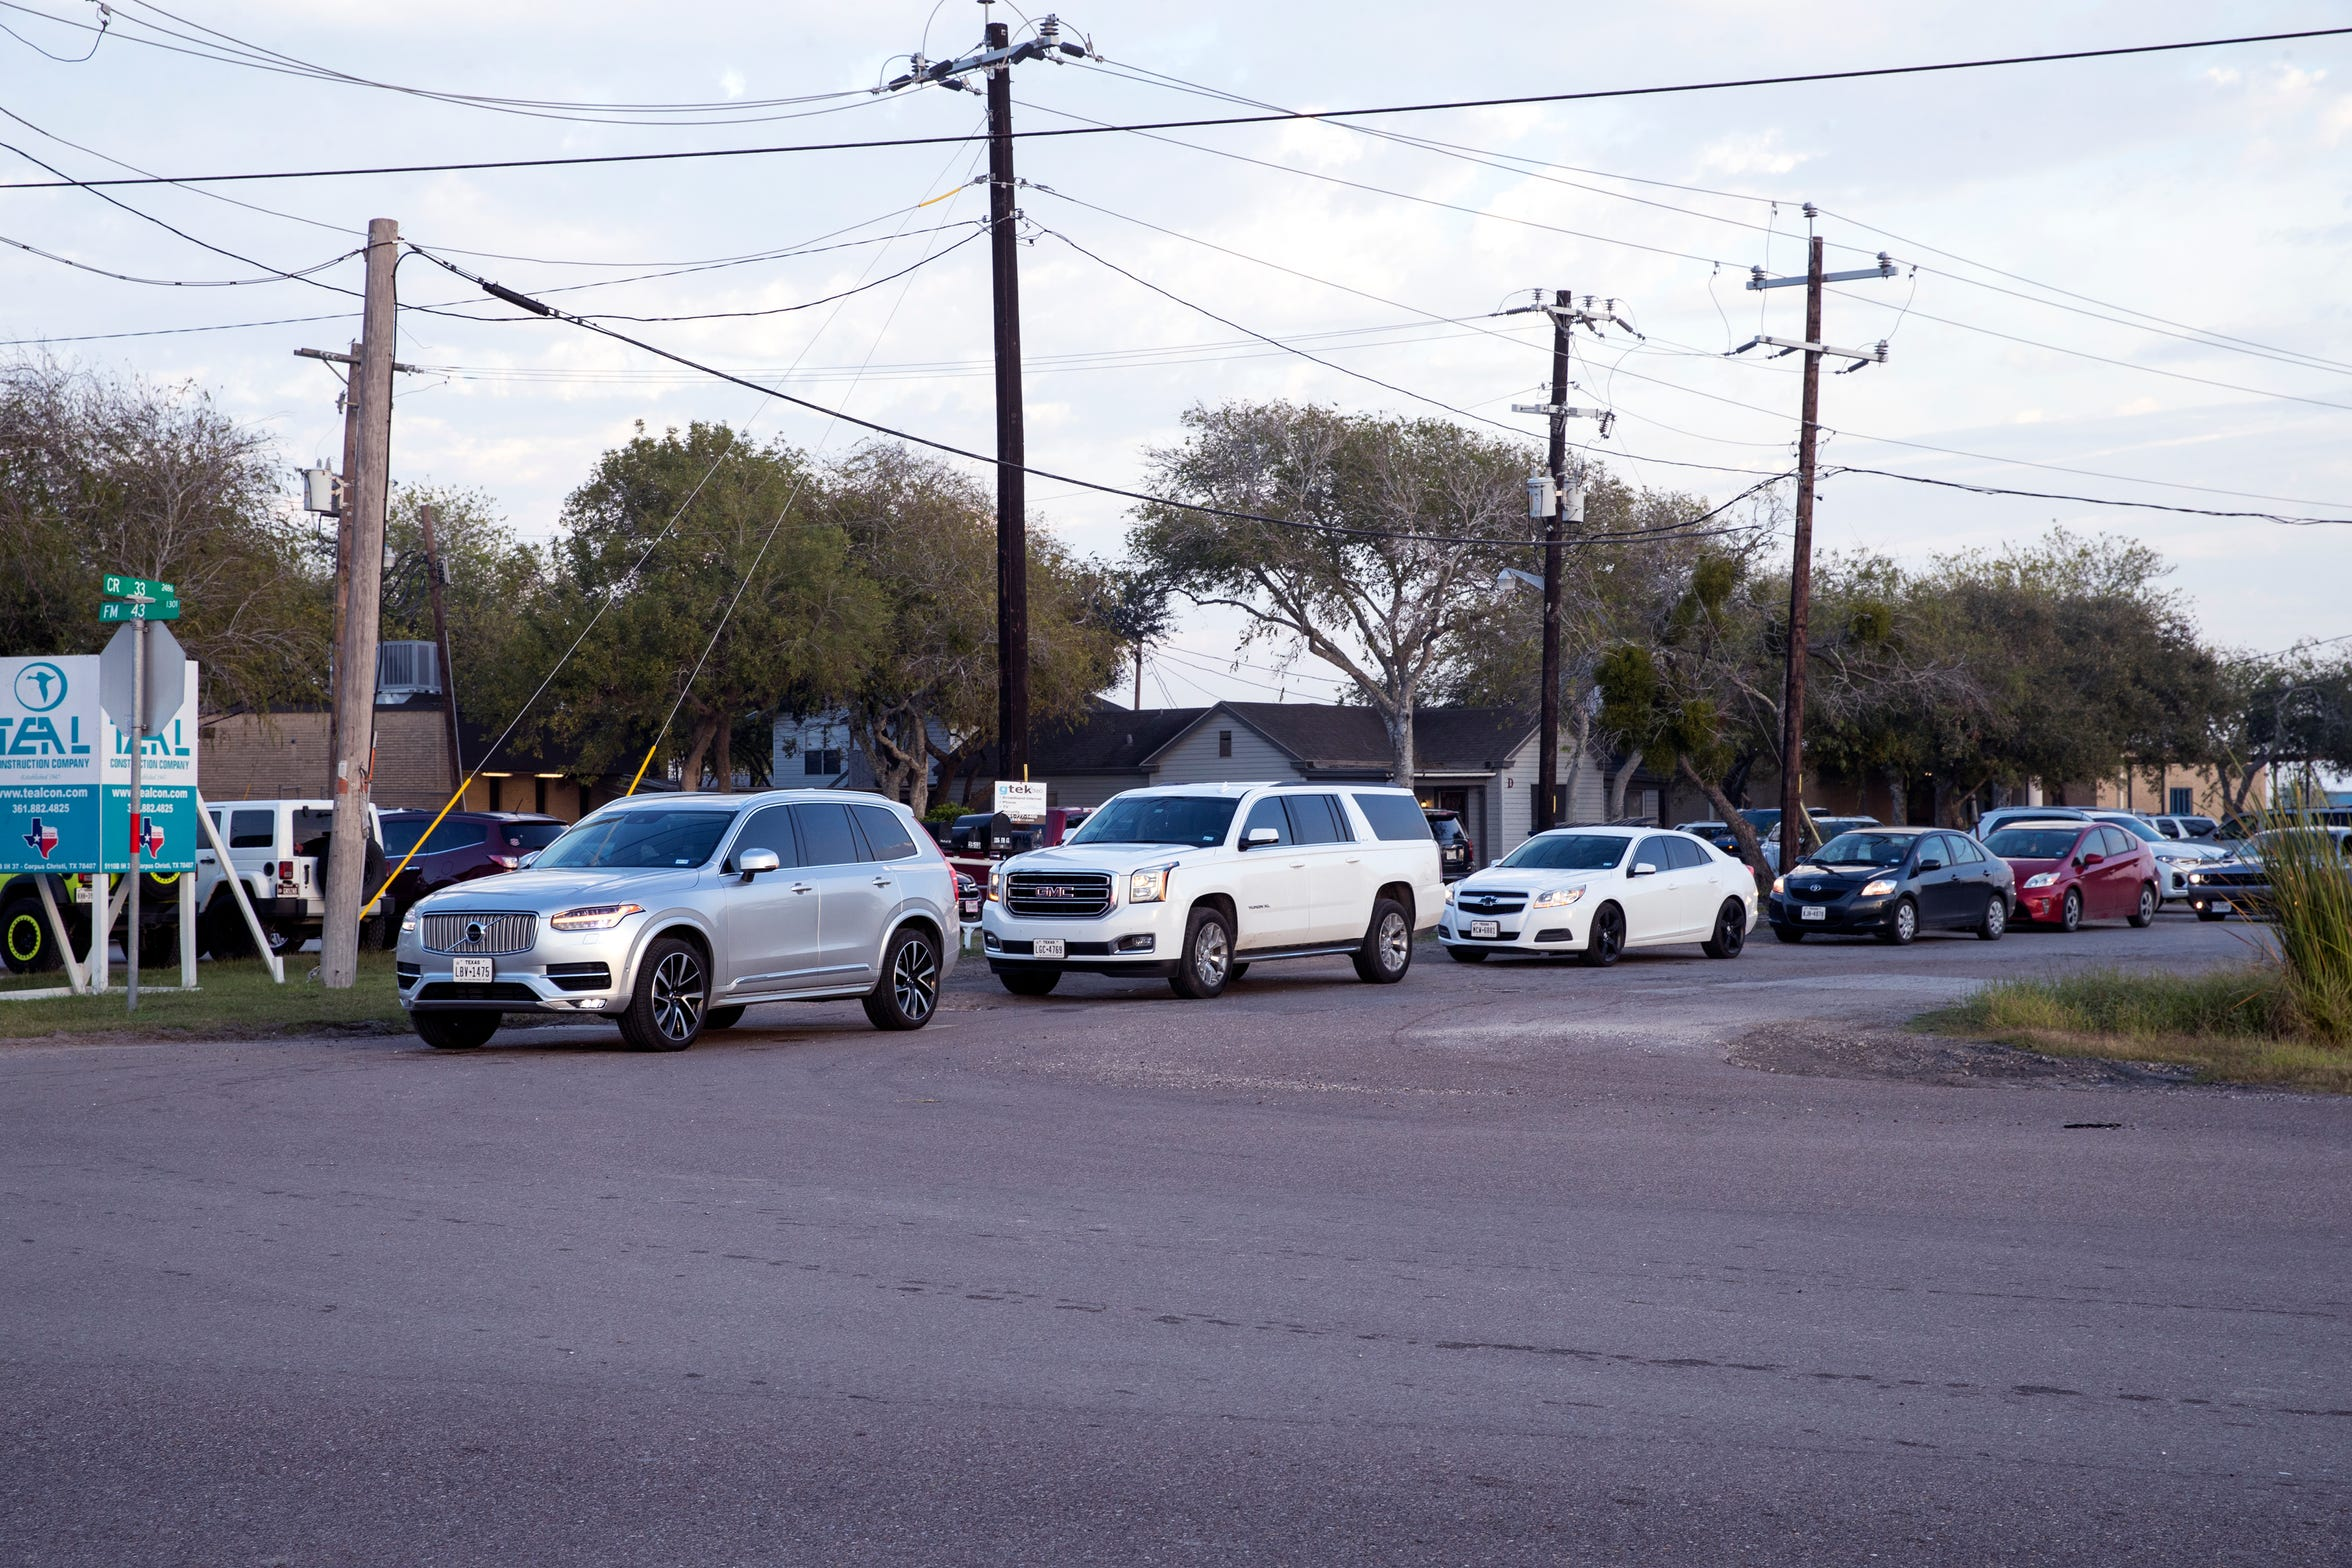 Kids are dropped off at schools at the London Independent School District on November 22, 2019. Developers have plans to build homes, and streets, near the district. The intersection of County Road 33 and Farm to Market Road 43 becomes congested during drop off times. County Road 33 is in bad condition and Corpus Christi is looking to annex it to widen it to four lanes.